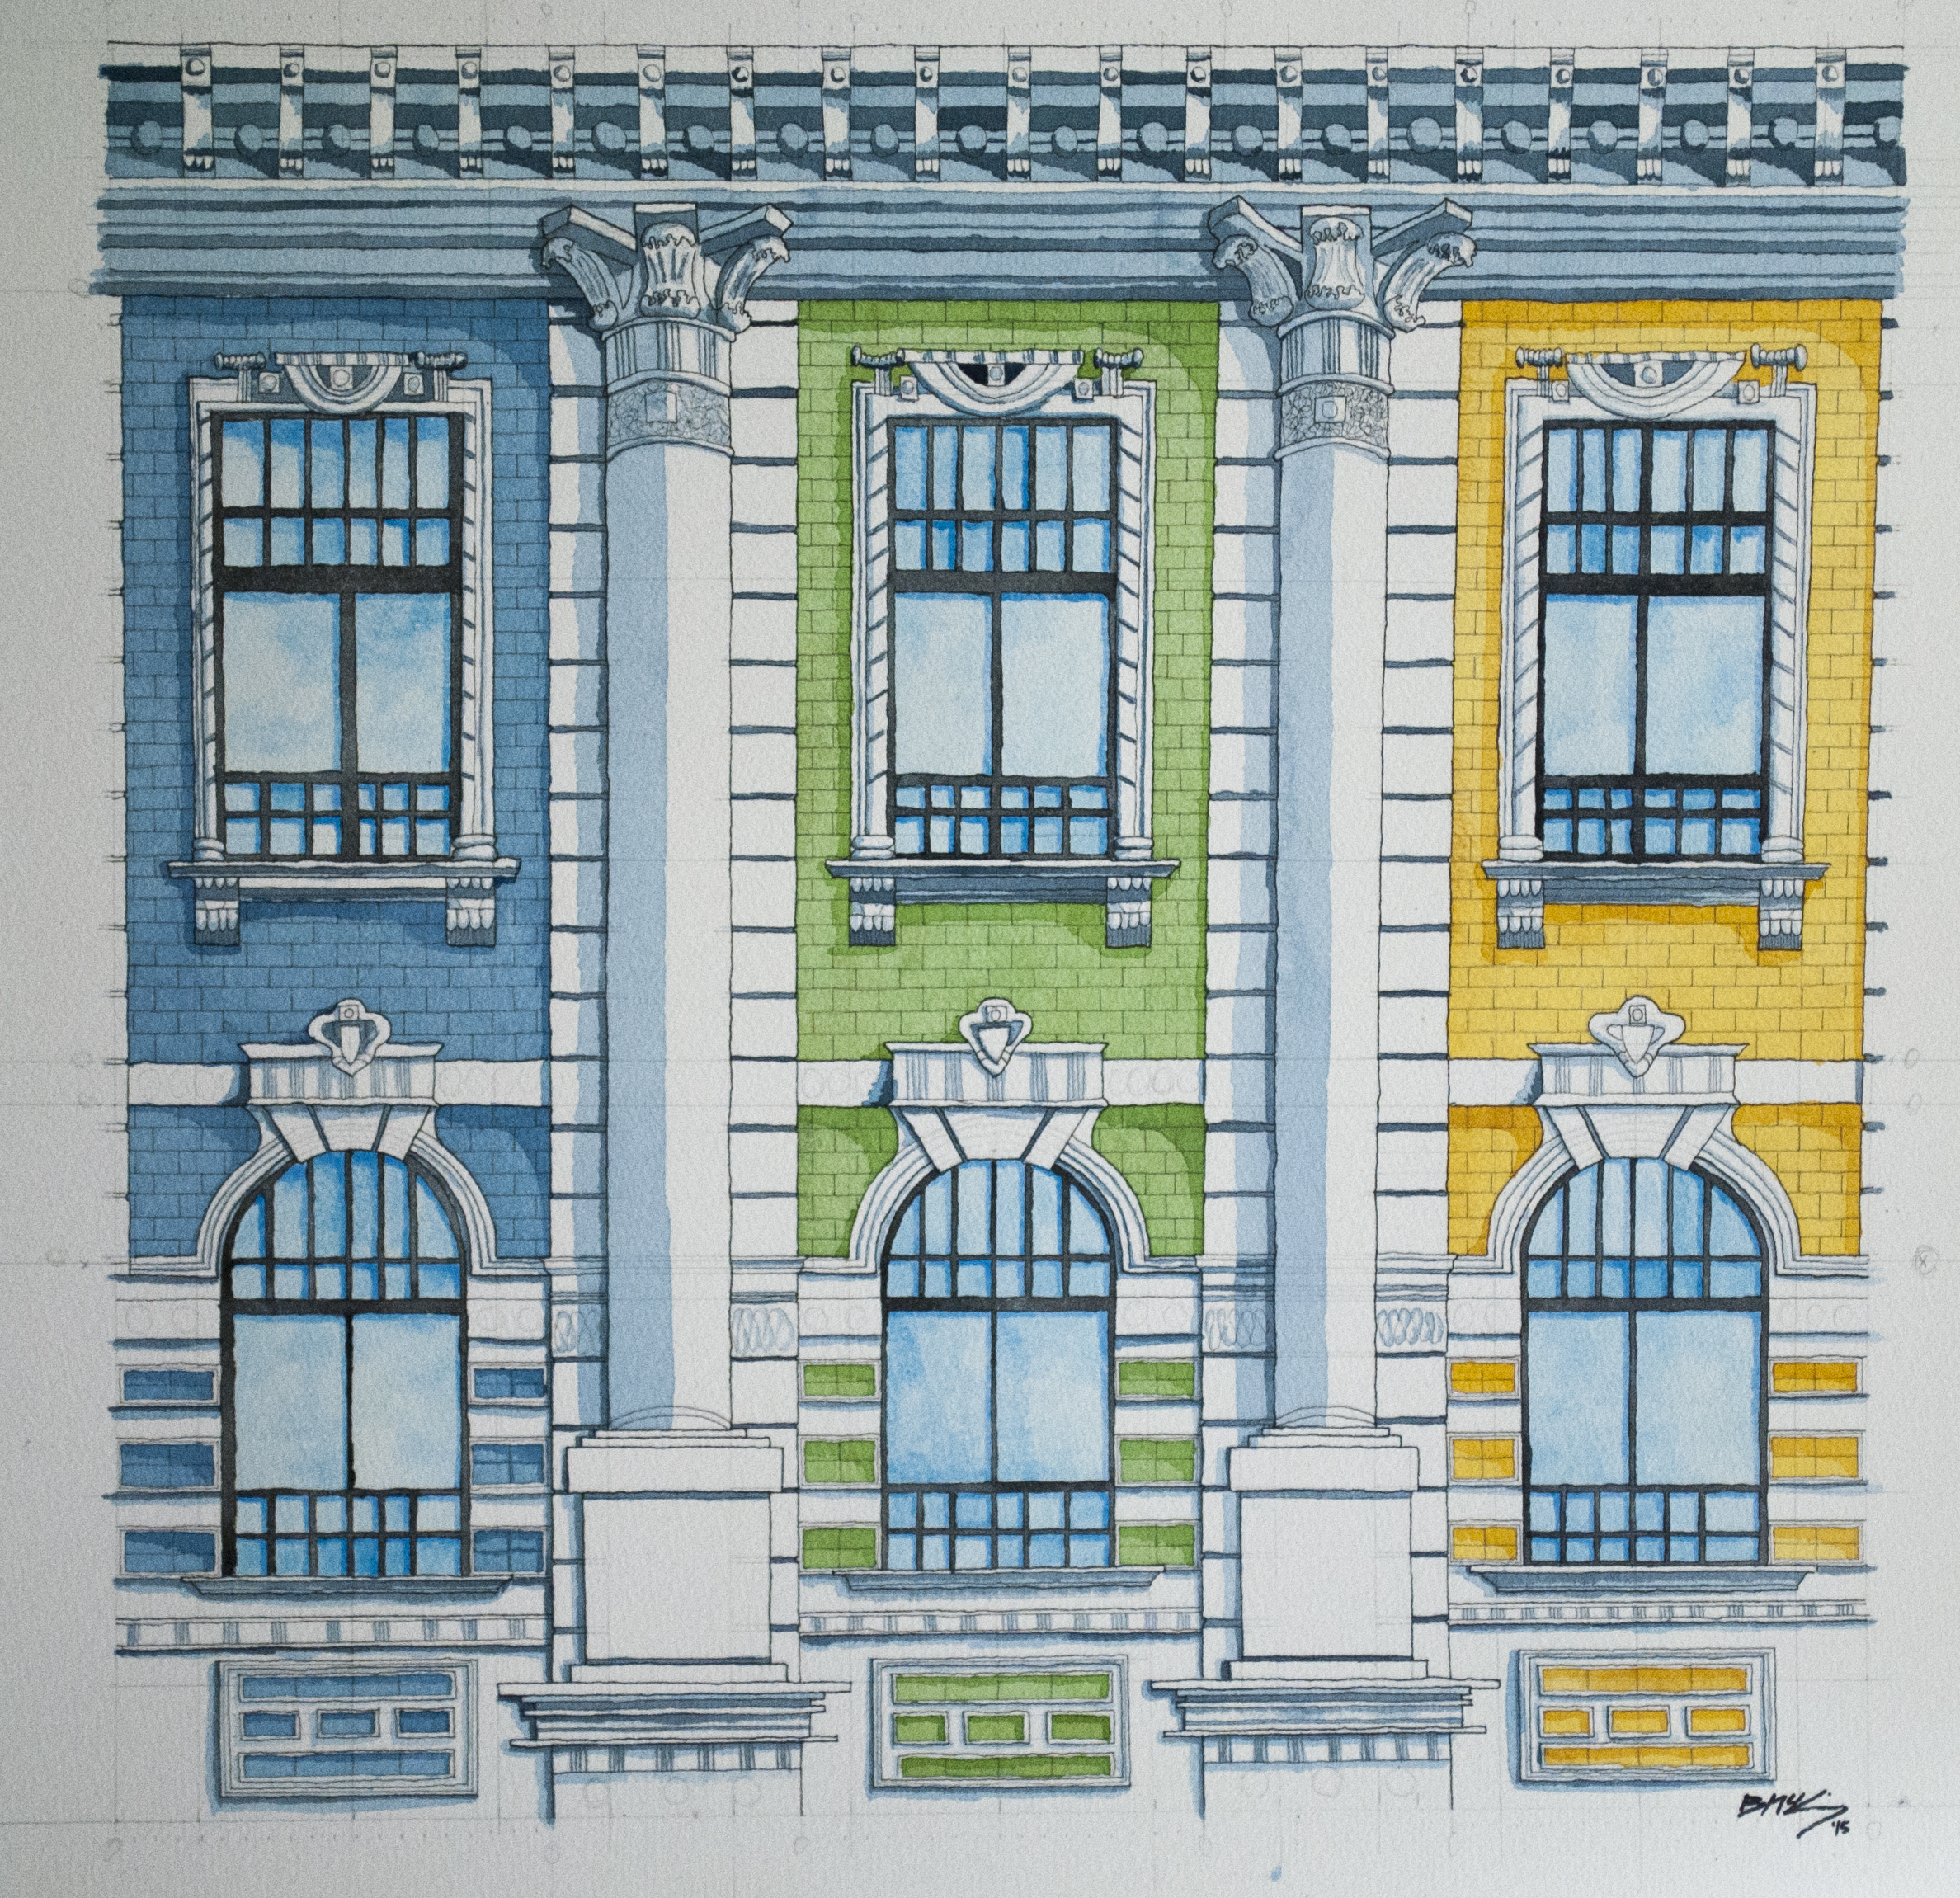 French Facade, Watercolor on 300lb, 22x30 inches, 2015